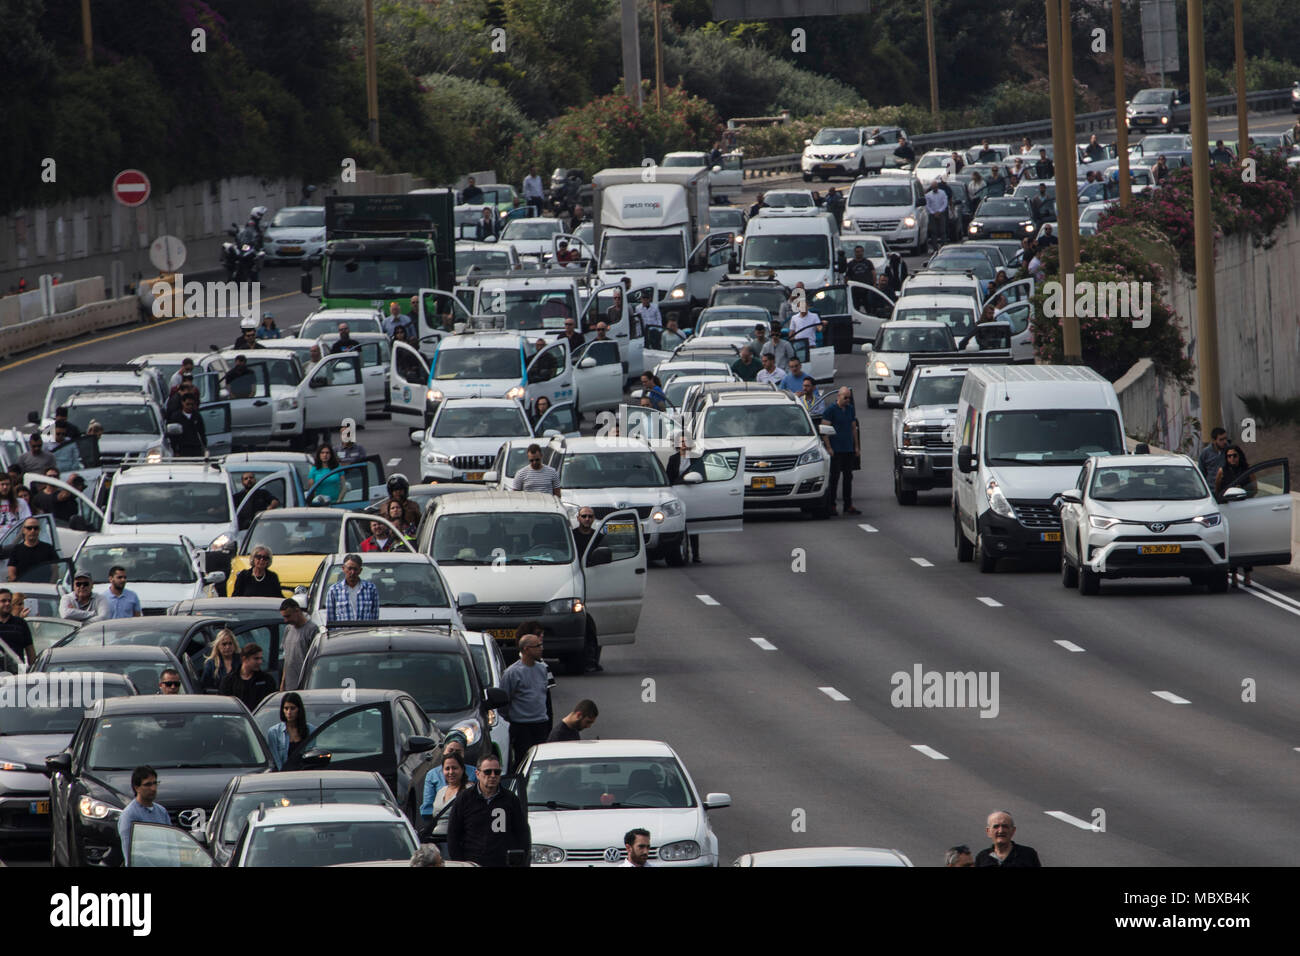 Tel Aviv, Israel. 12th April, 2018. People exit their cars on a highway and observe two minutes of silence to mark the Yom HaShoah (Holocaust and Heroism Remembrance Day), which commemorates approximately six million Jews who perished in the Holocaust that was carried out by Nazis, in Tel Aviv, Israel, 12 April 2018. Yom HaShoah is an annual occasion on which an air raid siren sounds throughout the whole country. While almost everything comes to a complete halt, Israelis are expected to observe two minutes of solemn reflection while the siren is sounded. Credit: dpa picture alliance/Alamy Live - Stock Image